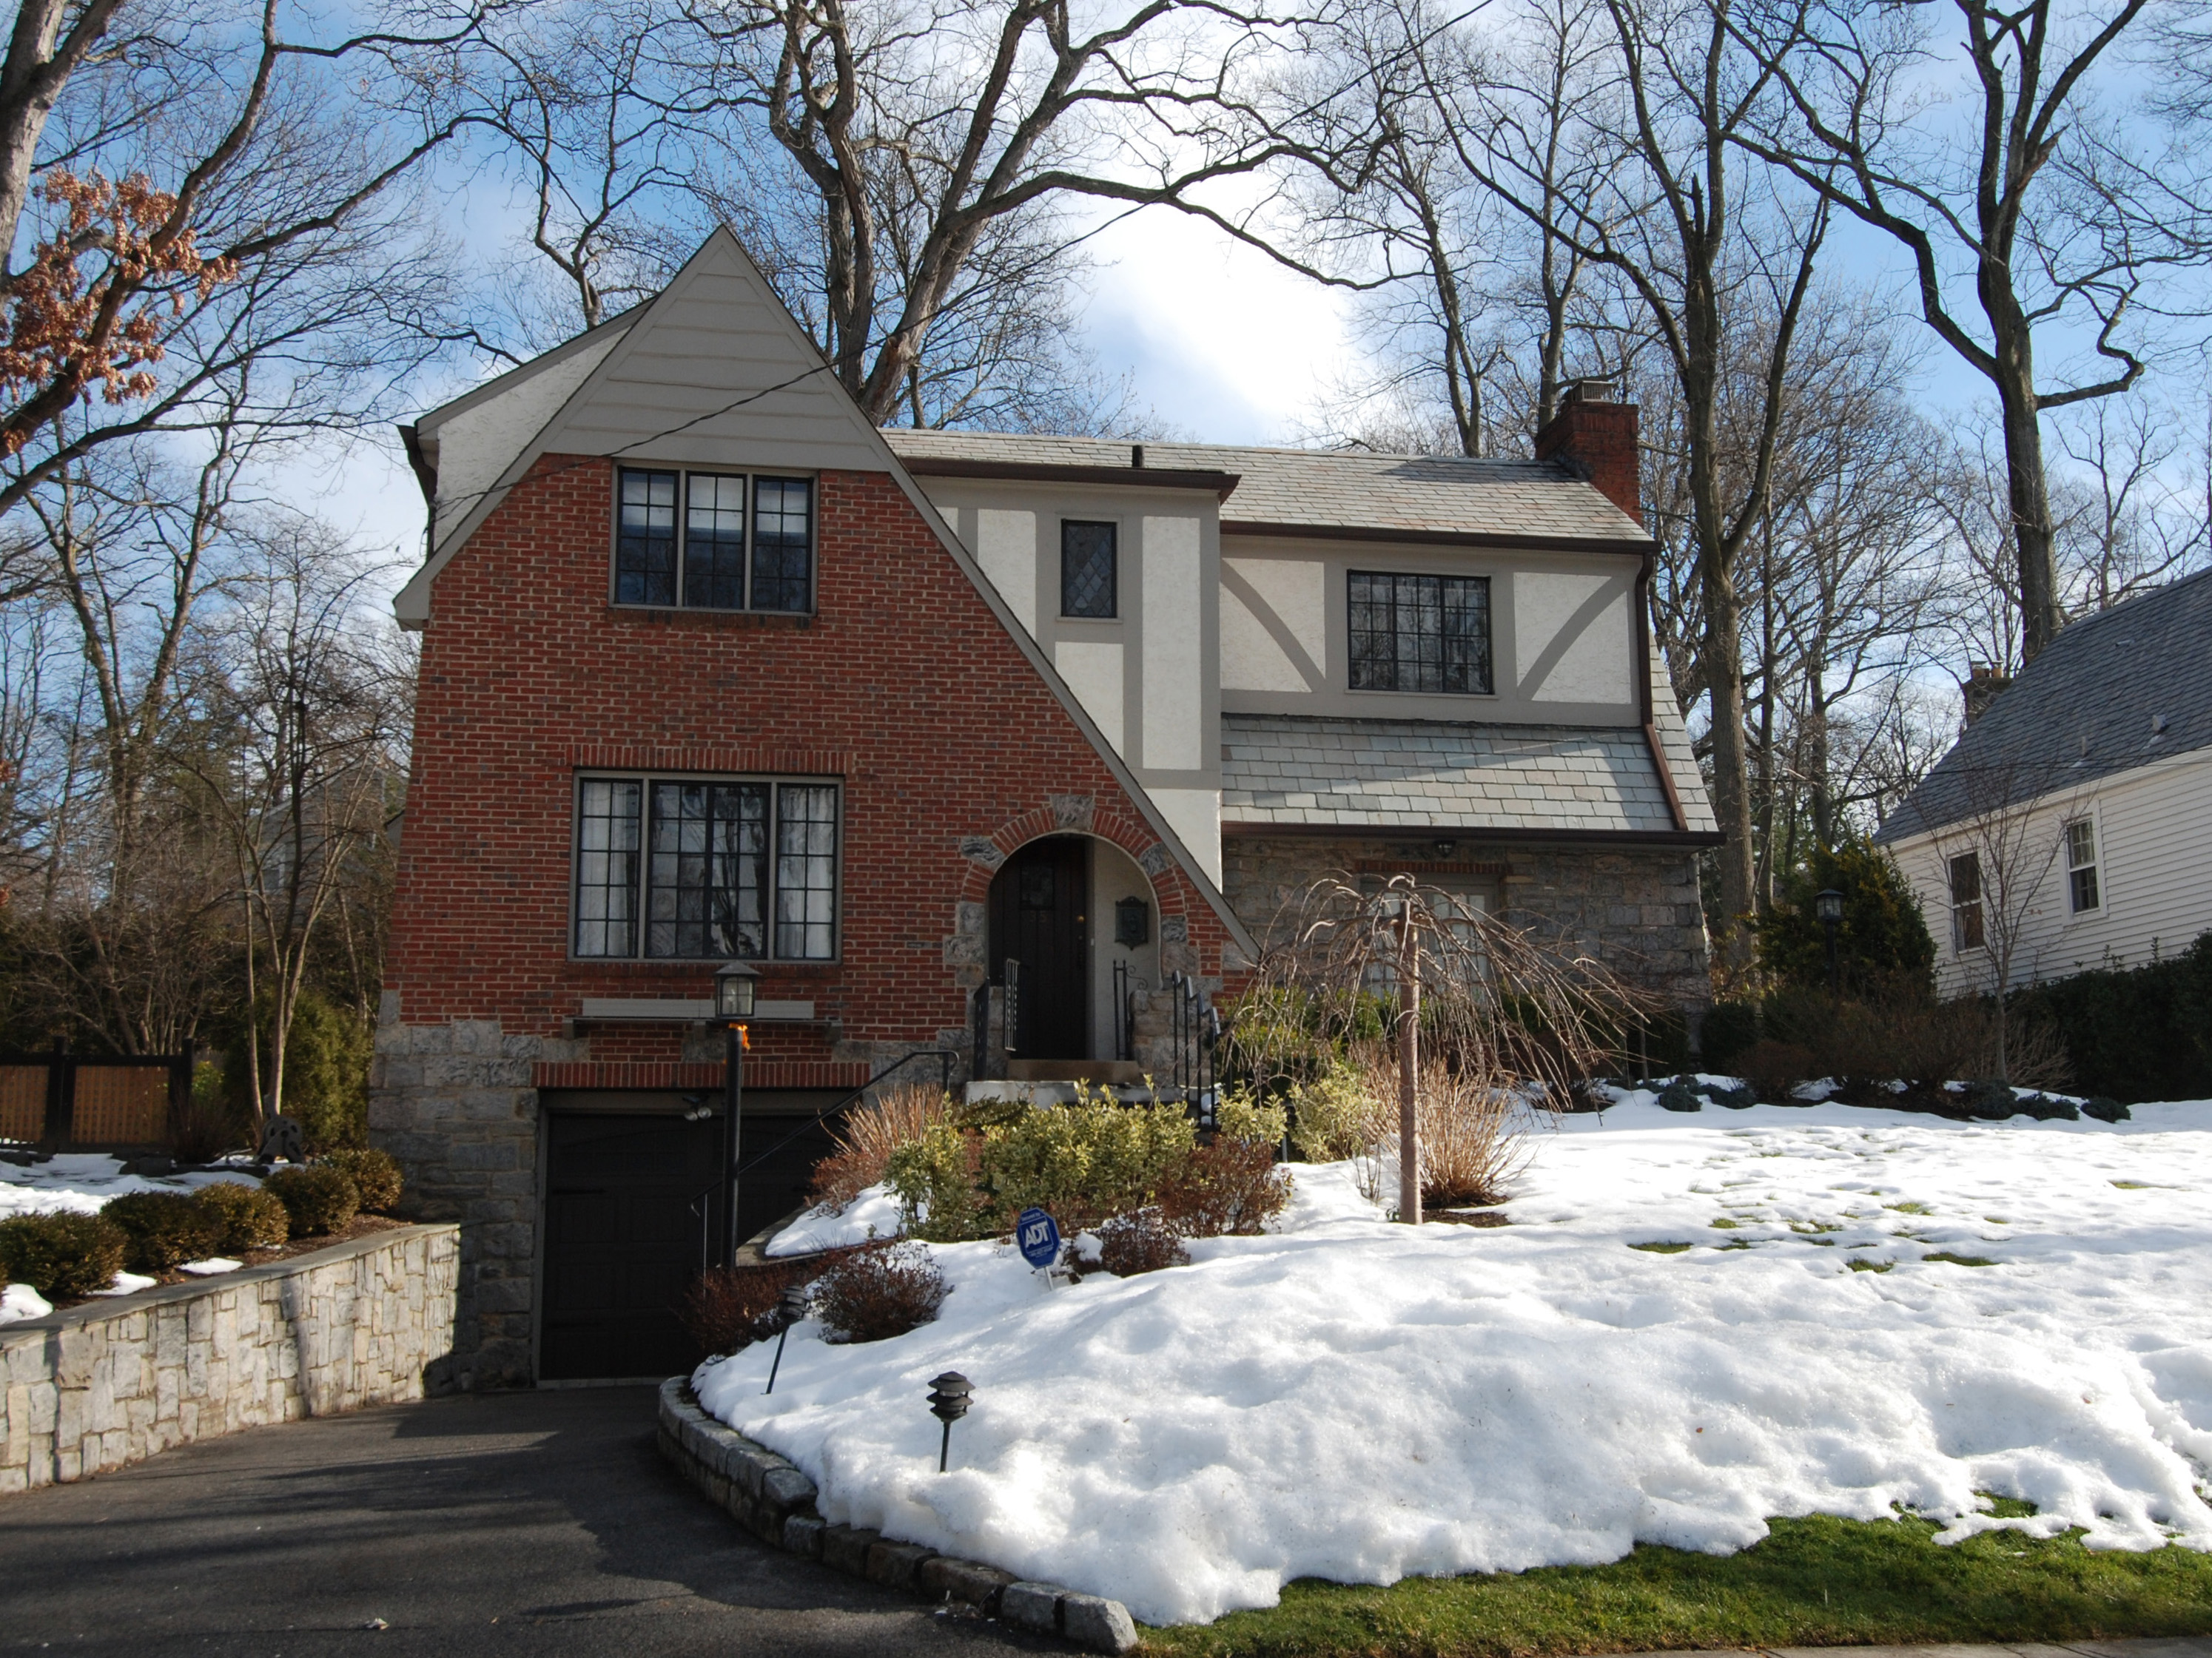 Single Family Home for Sale at Charming Larchmont Woods Tudor 35 Kingsbury Road New Rochelle, New York 10804 United States